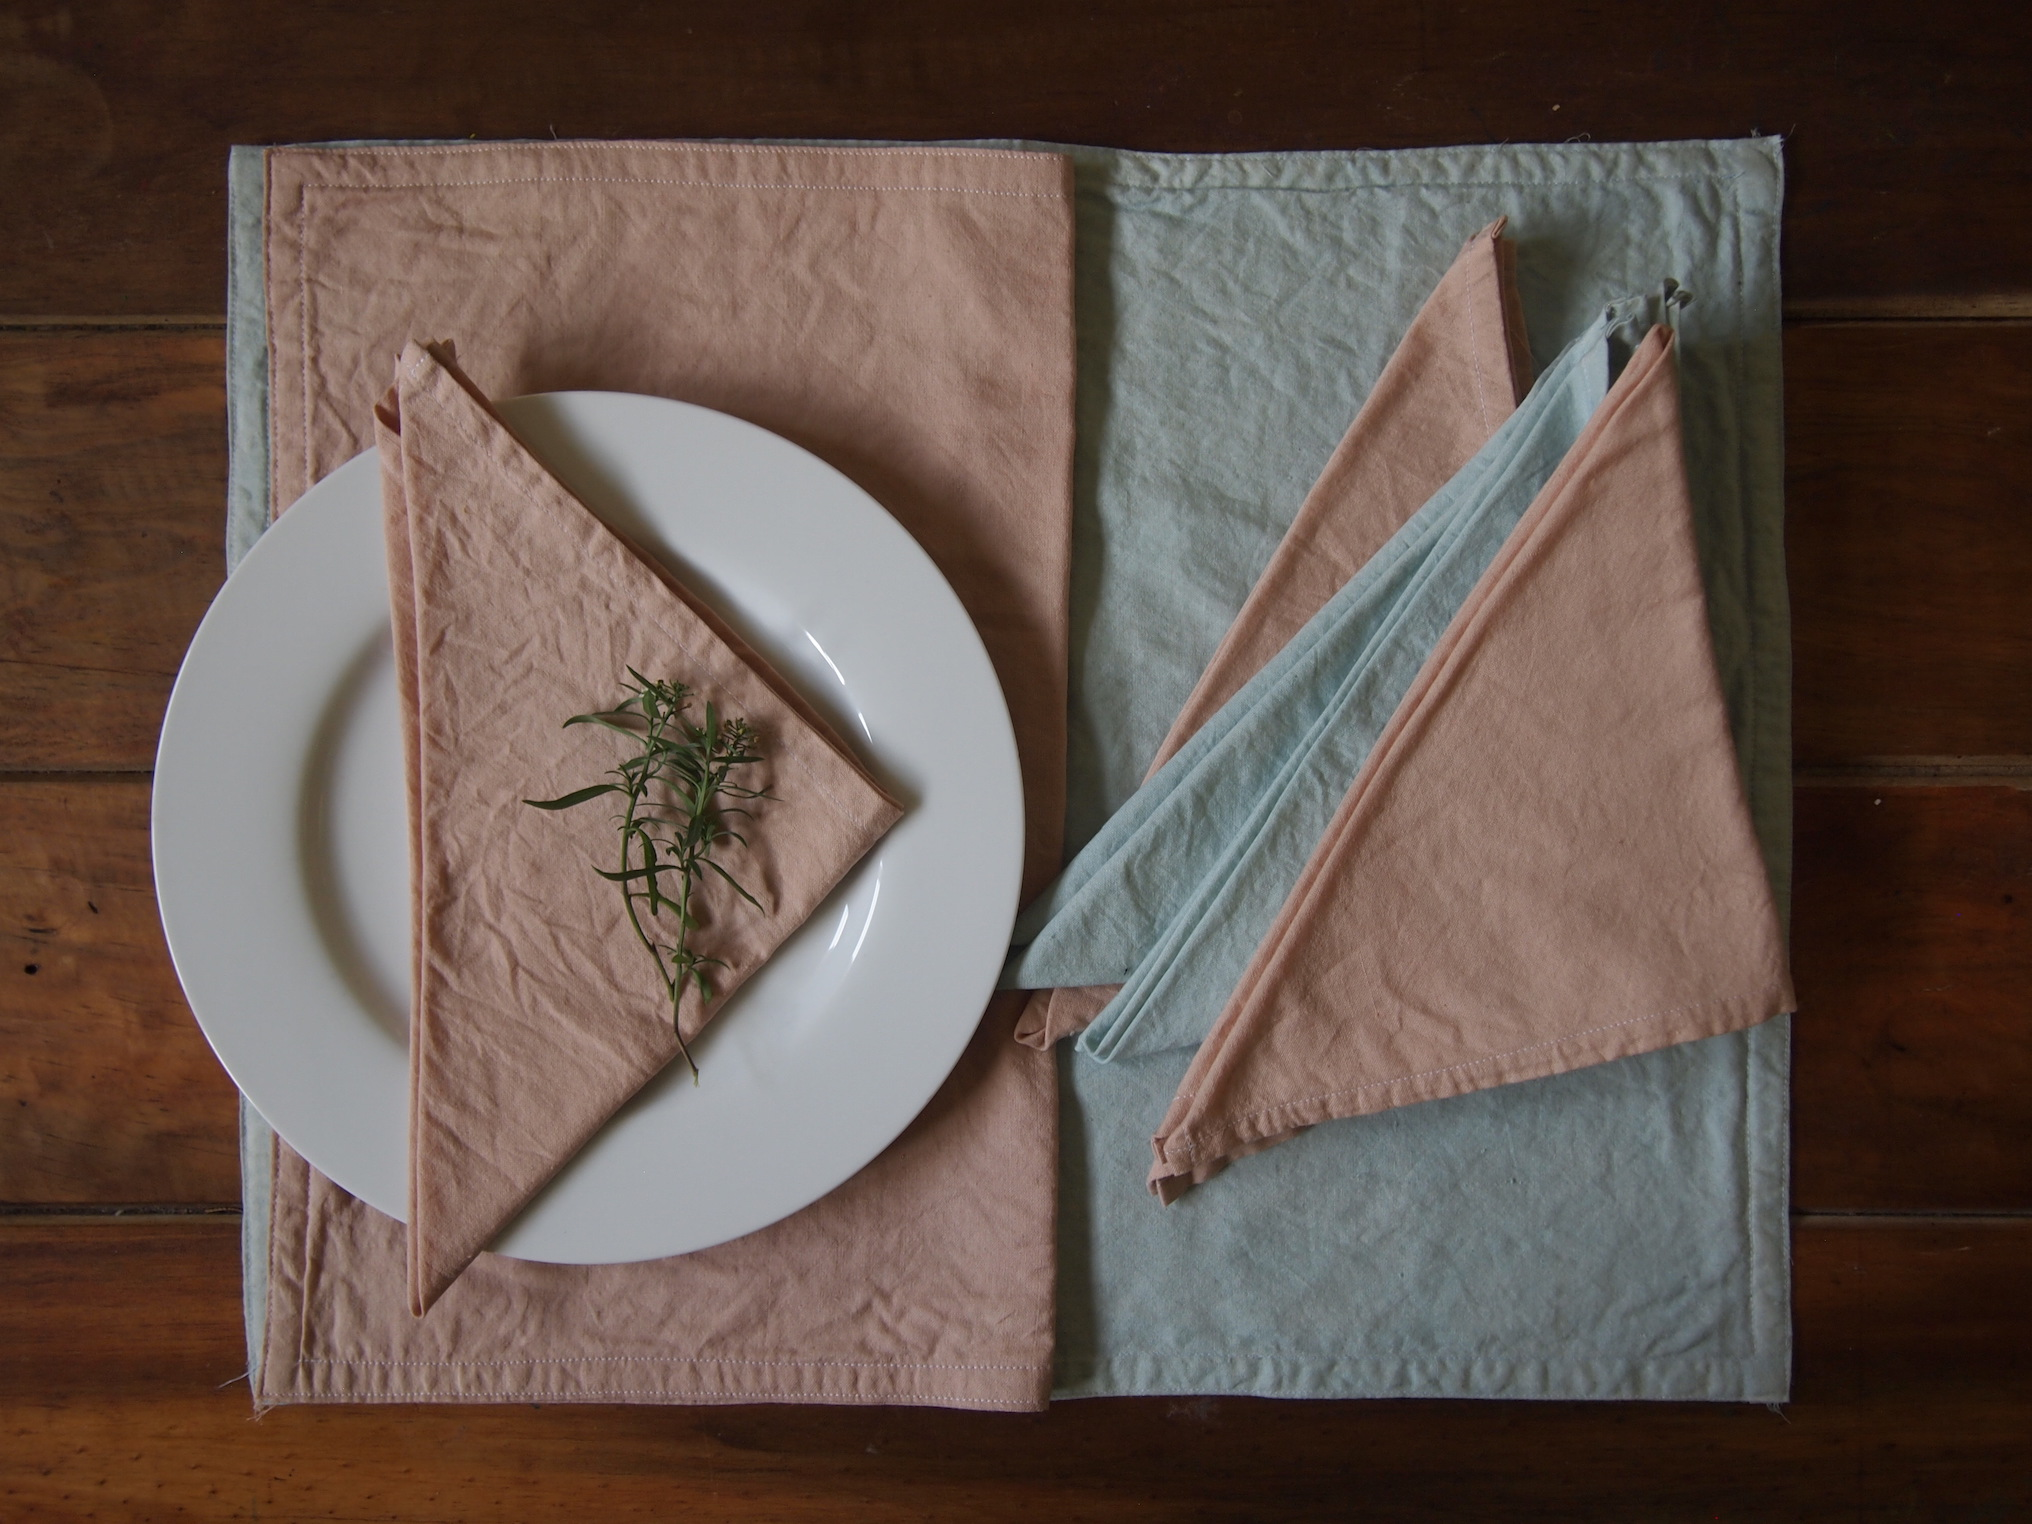 AMMA_Placemat_Tablesetting.JPG